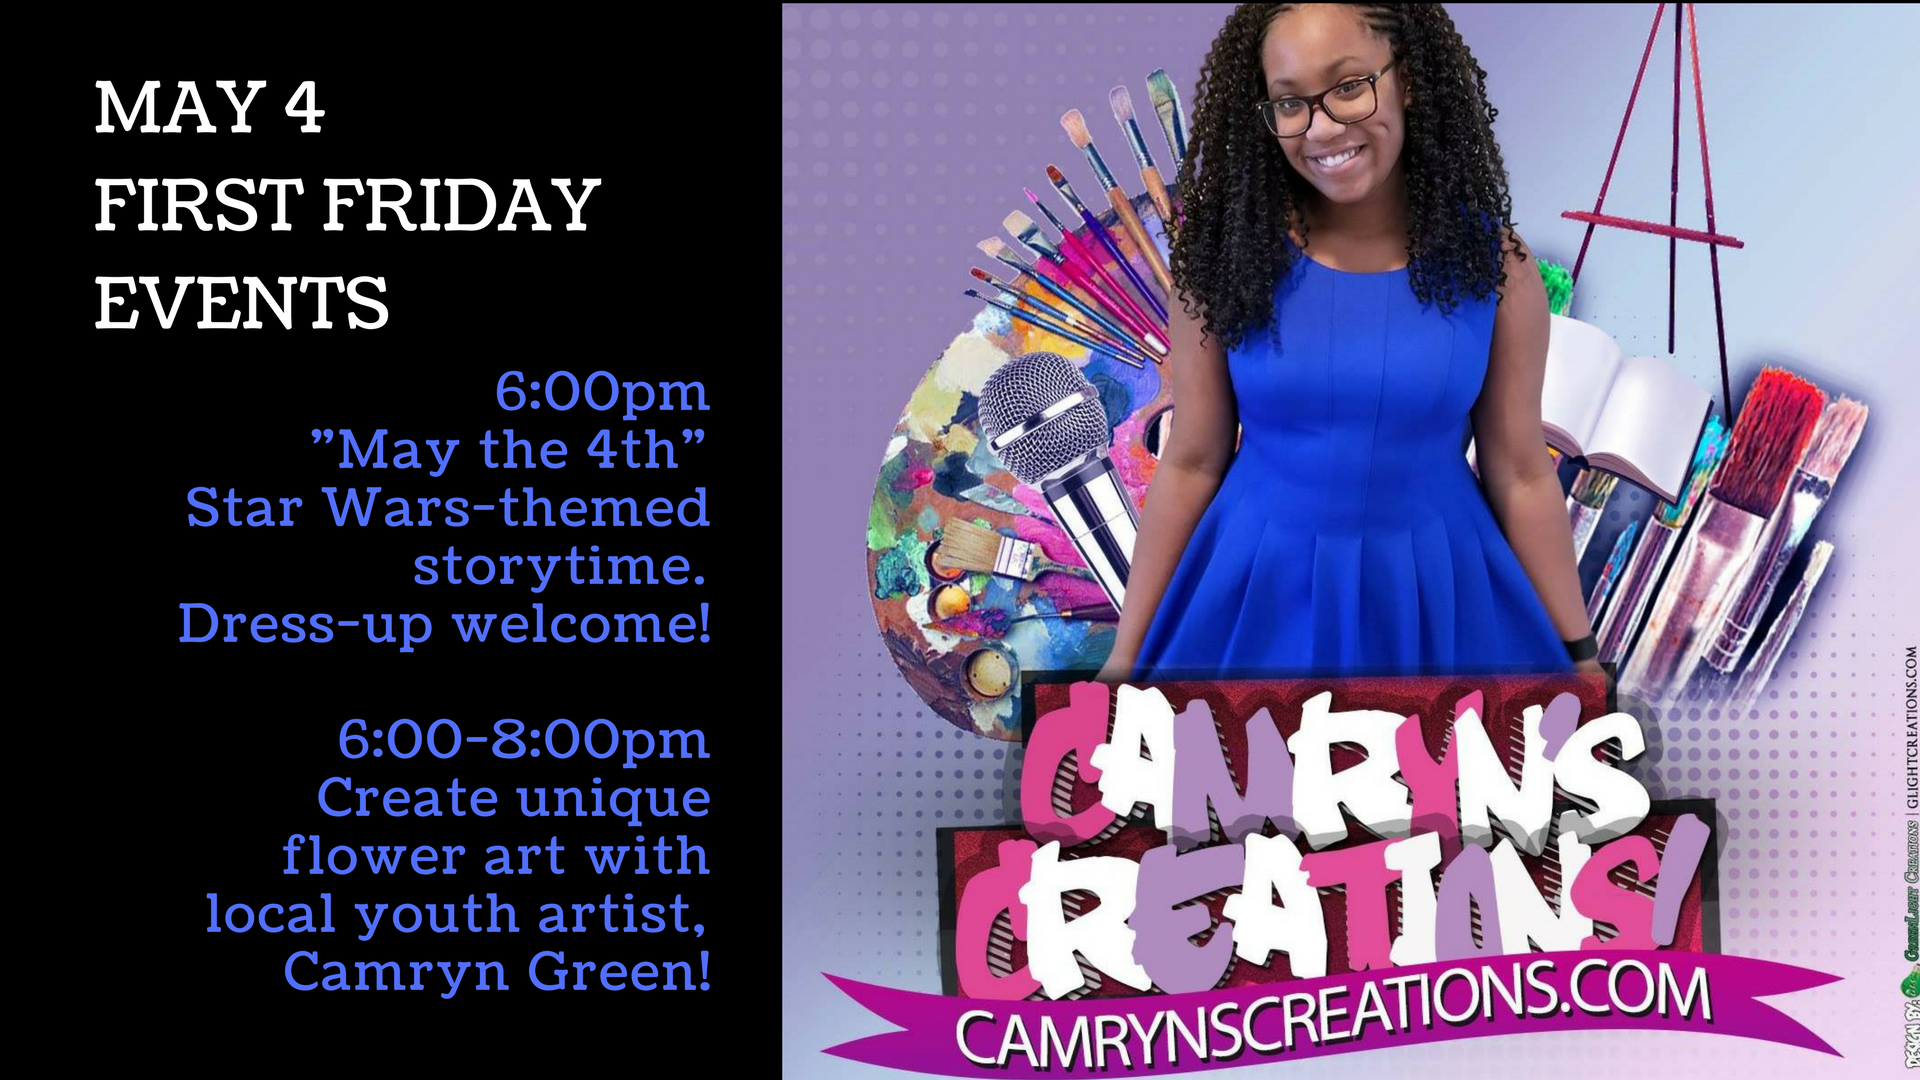 may 4 first friday events.png